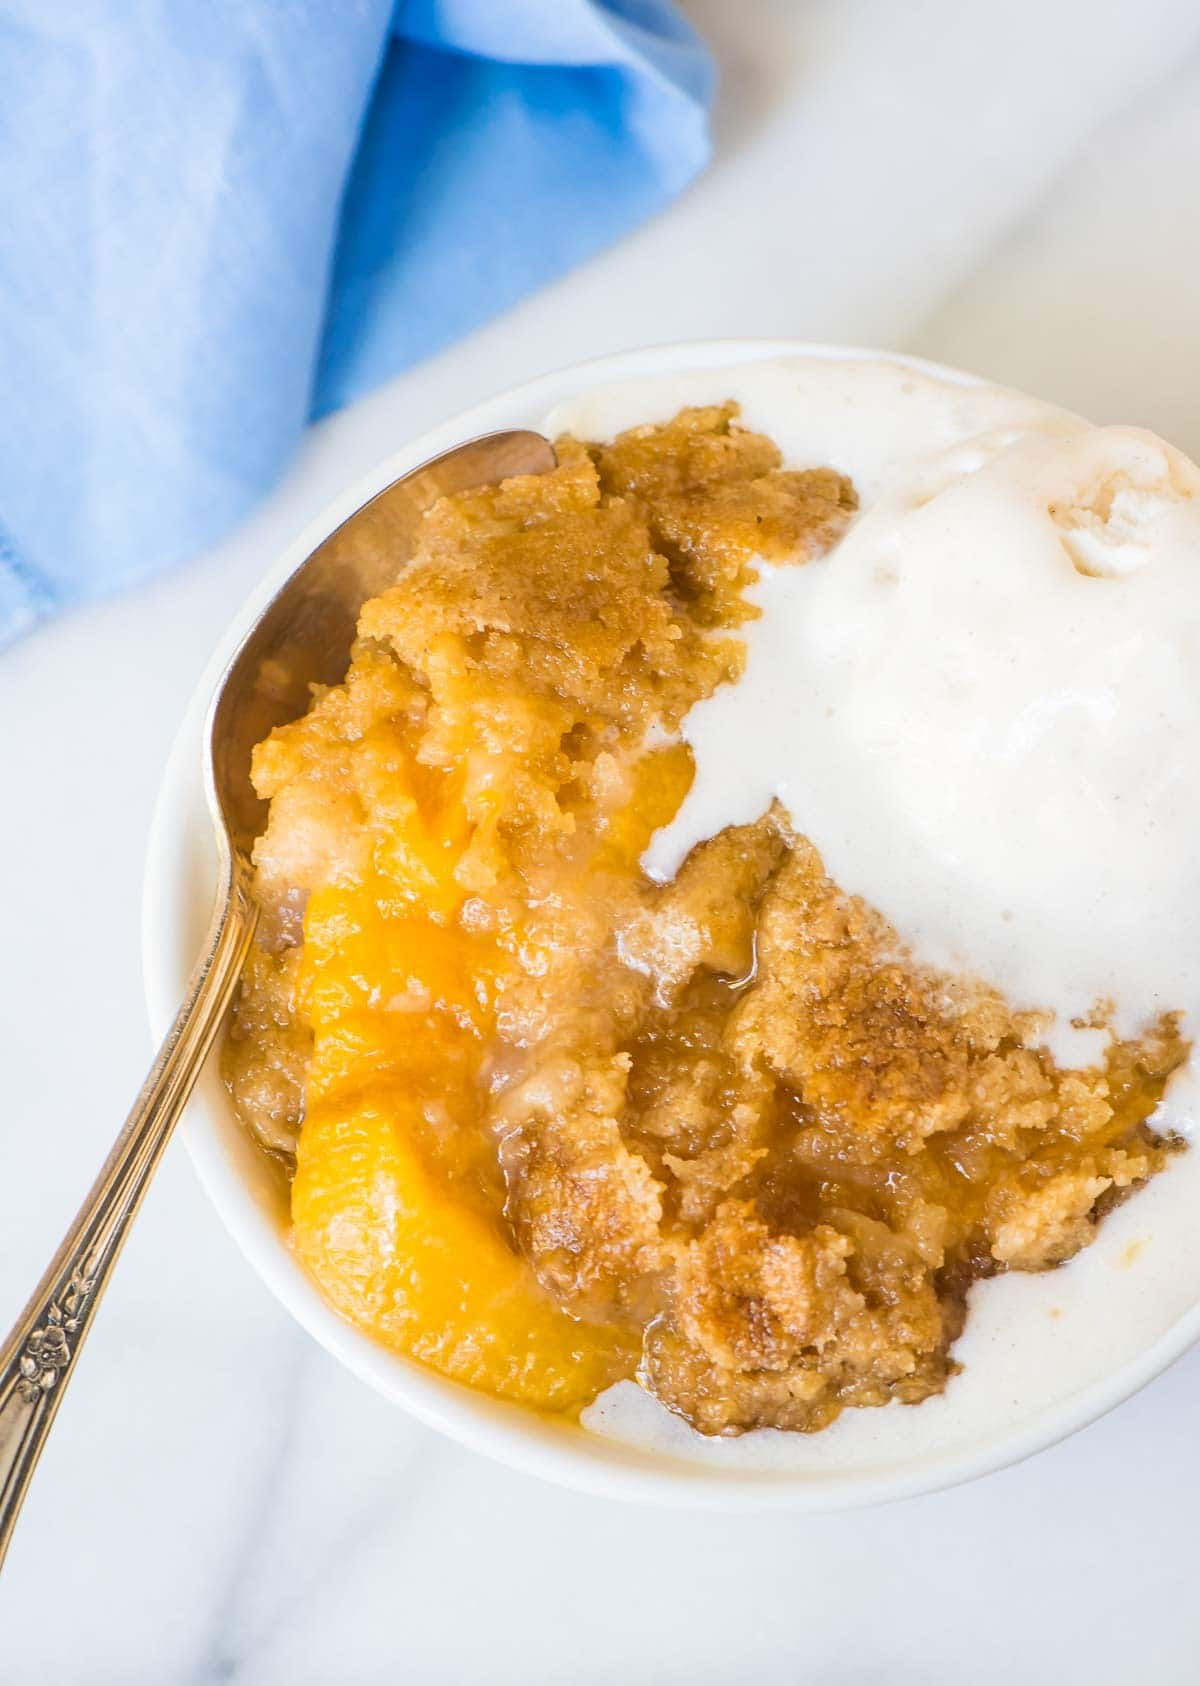 Crock Pot Peach Cobbler Recipe With Cake Mix